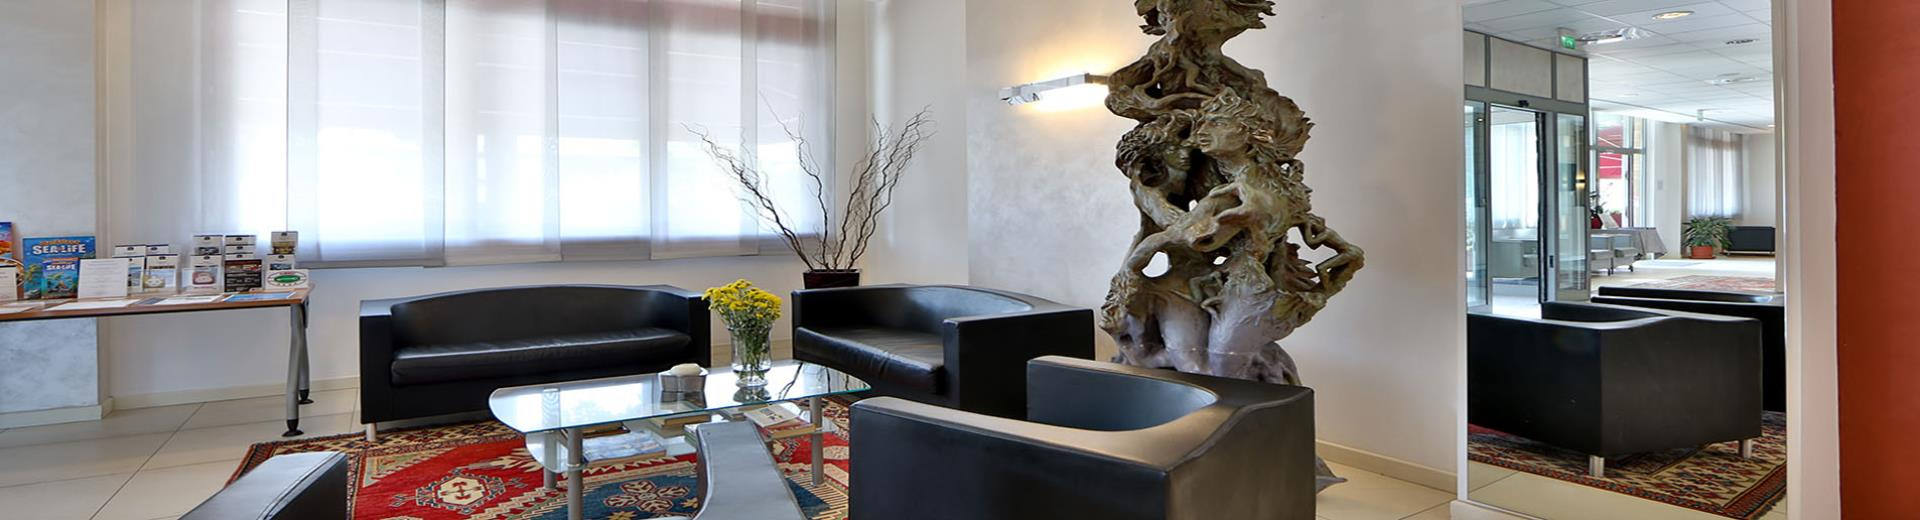 Book your 4 star hotel with internal pool and restaurant near Mantua